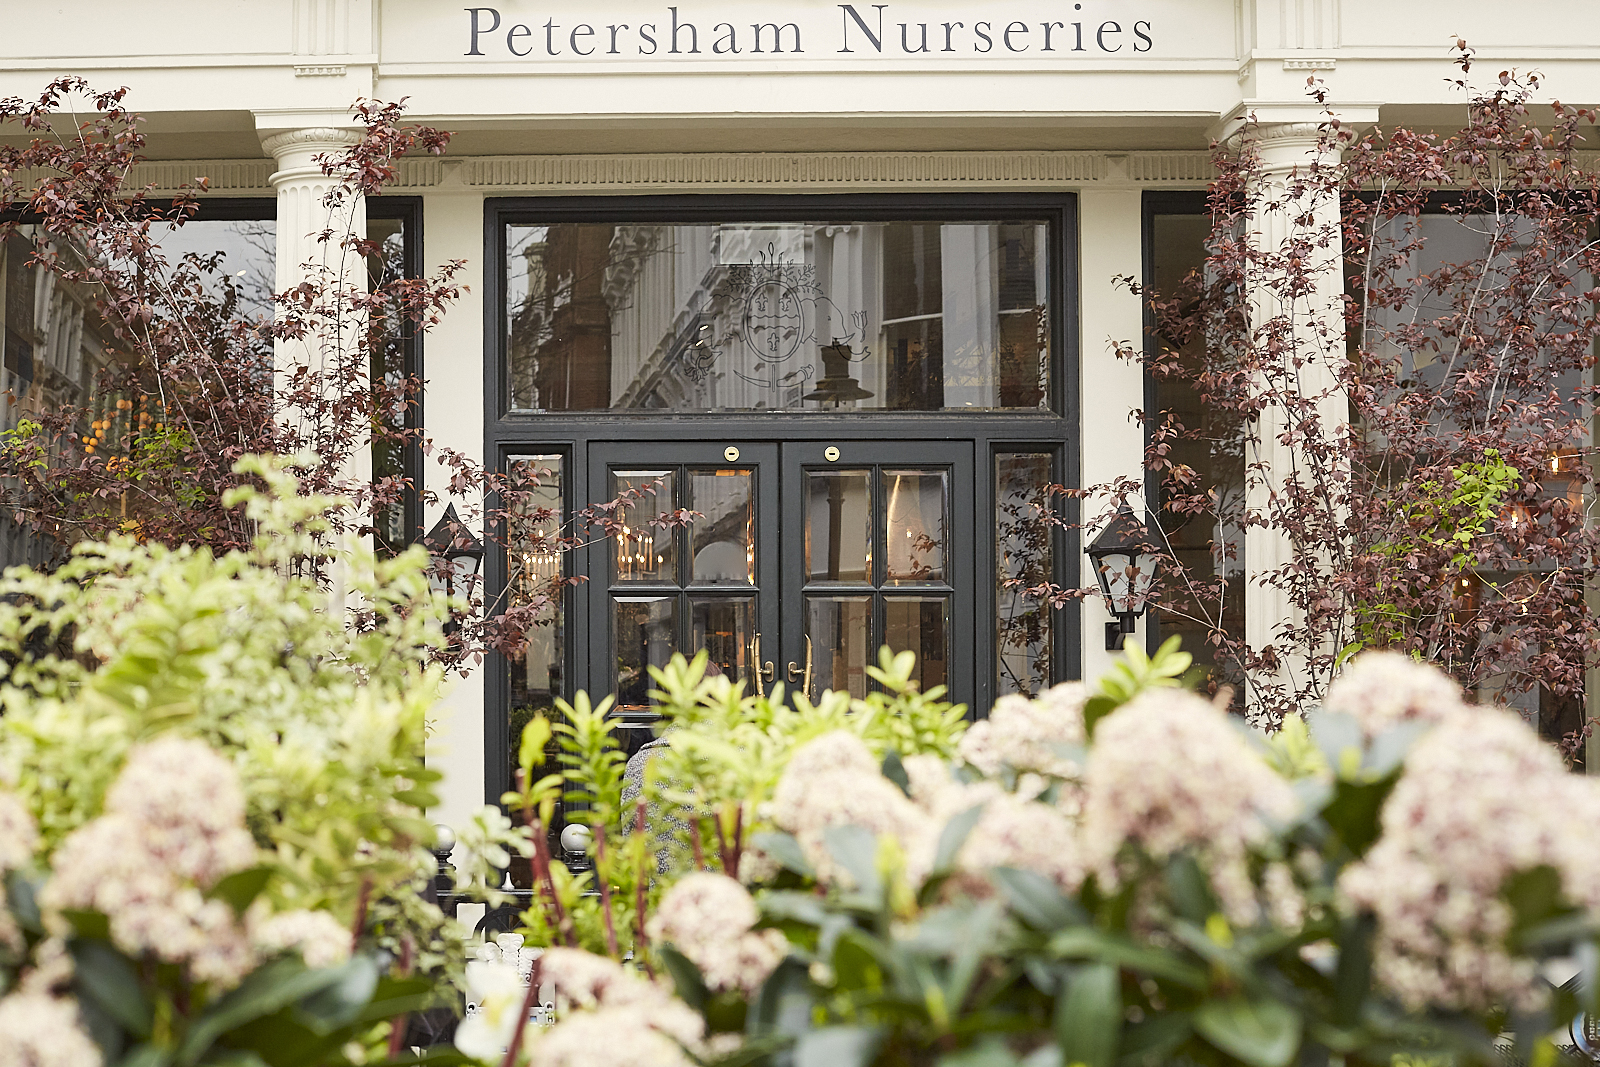 Petersham Nurseries Covent Garden review, Petersham Nurseries Covent Garden restaurant, best food in london right now